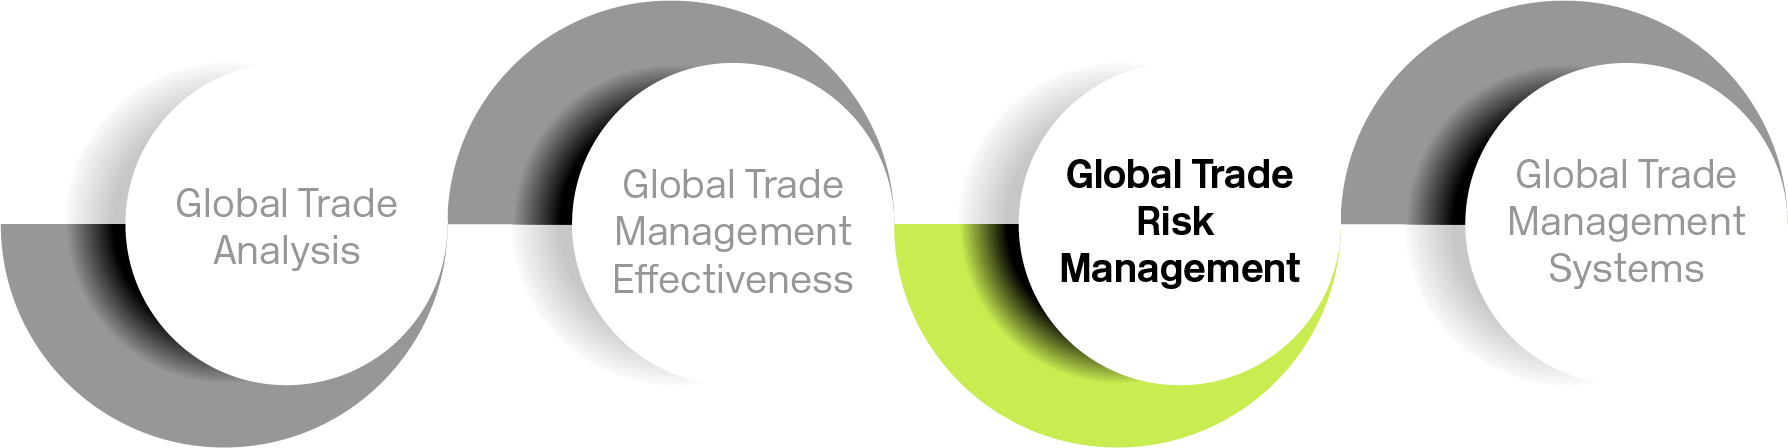 Graphic of Global trade risk management